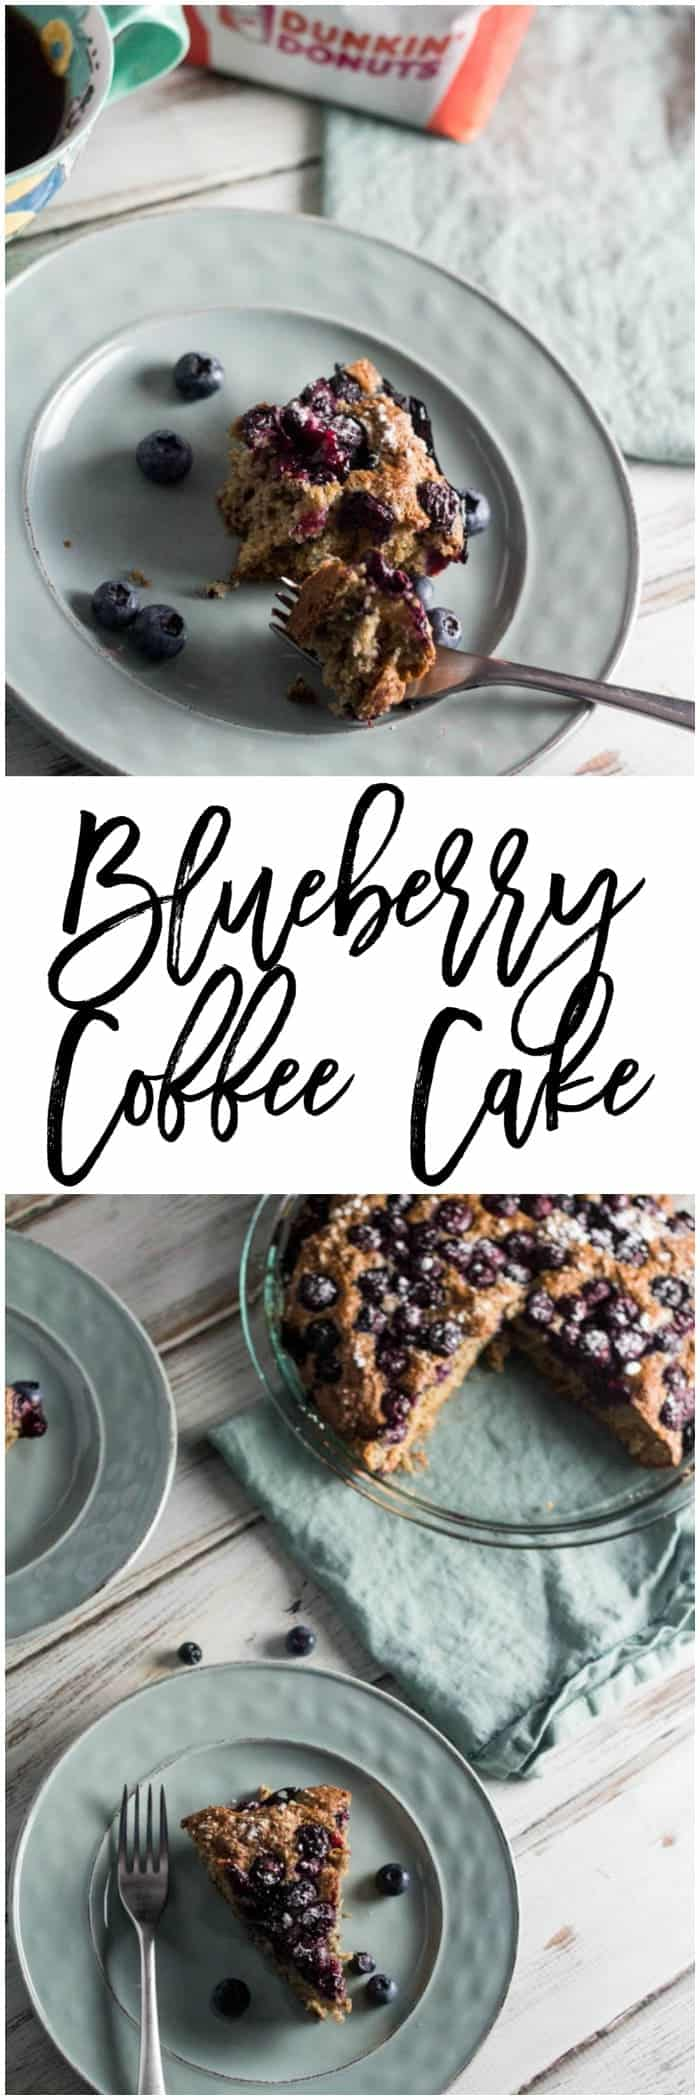 This healthy and easy blueberry coffee cake recipe is a perfect compliment to your morning cup of coffee from @publix.  #DunkinDonutsPublix #Pmedia #ad